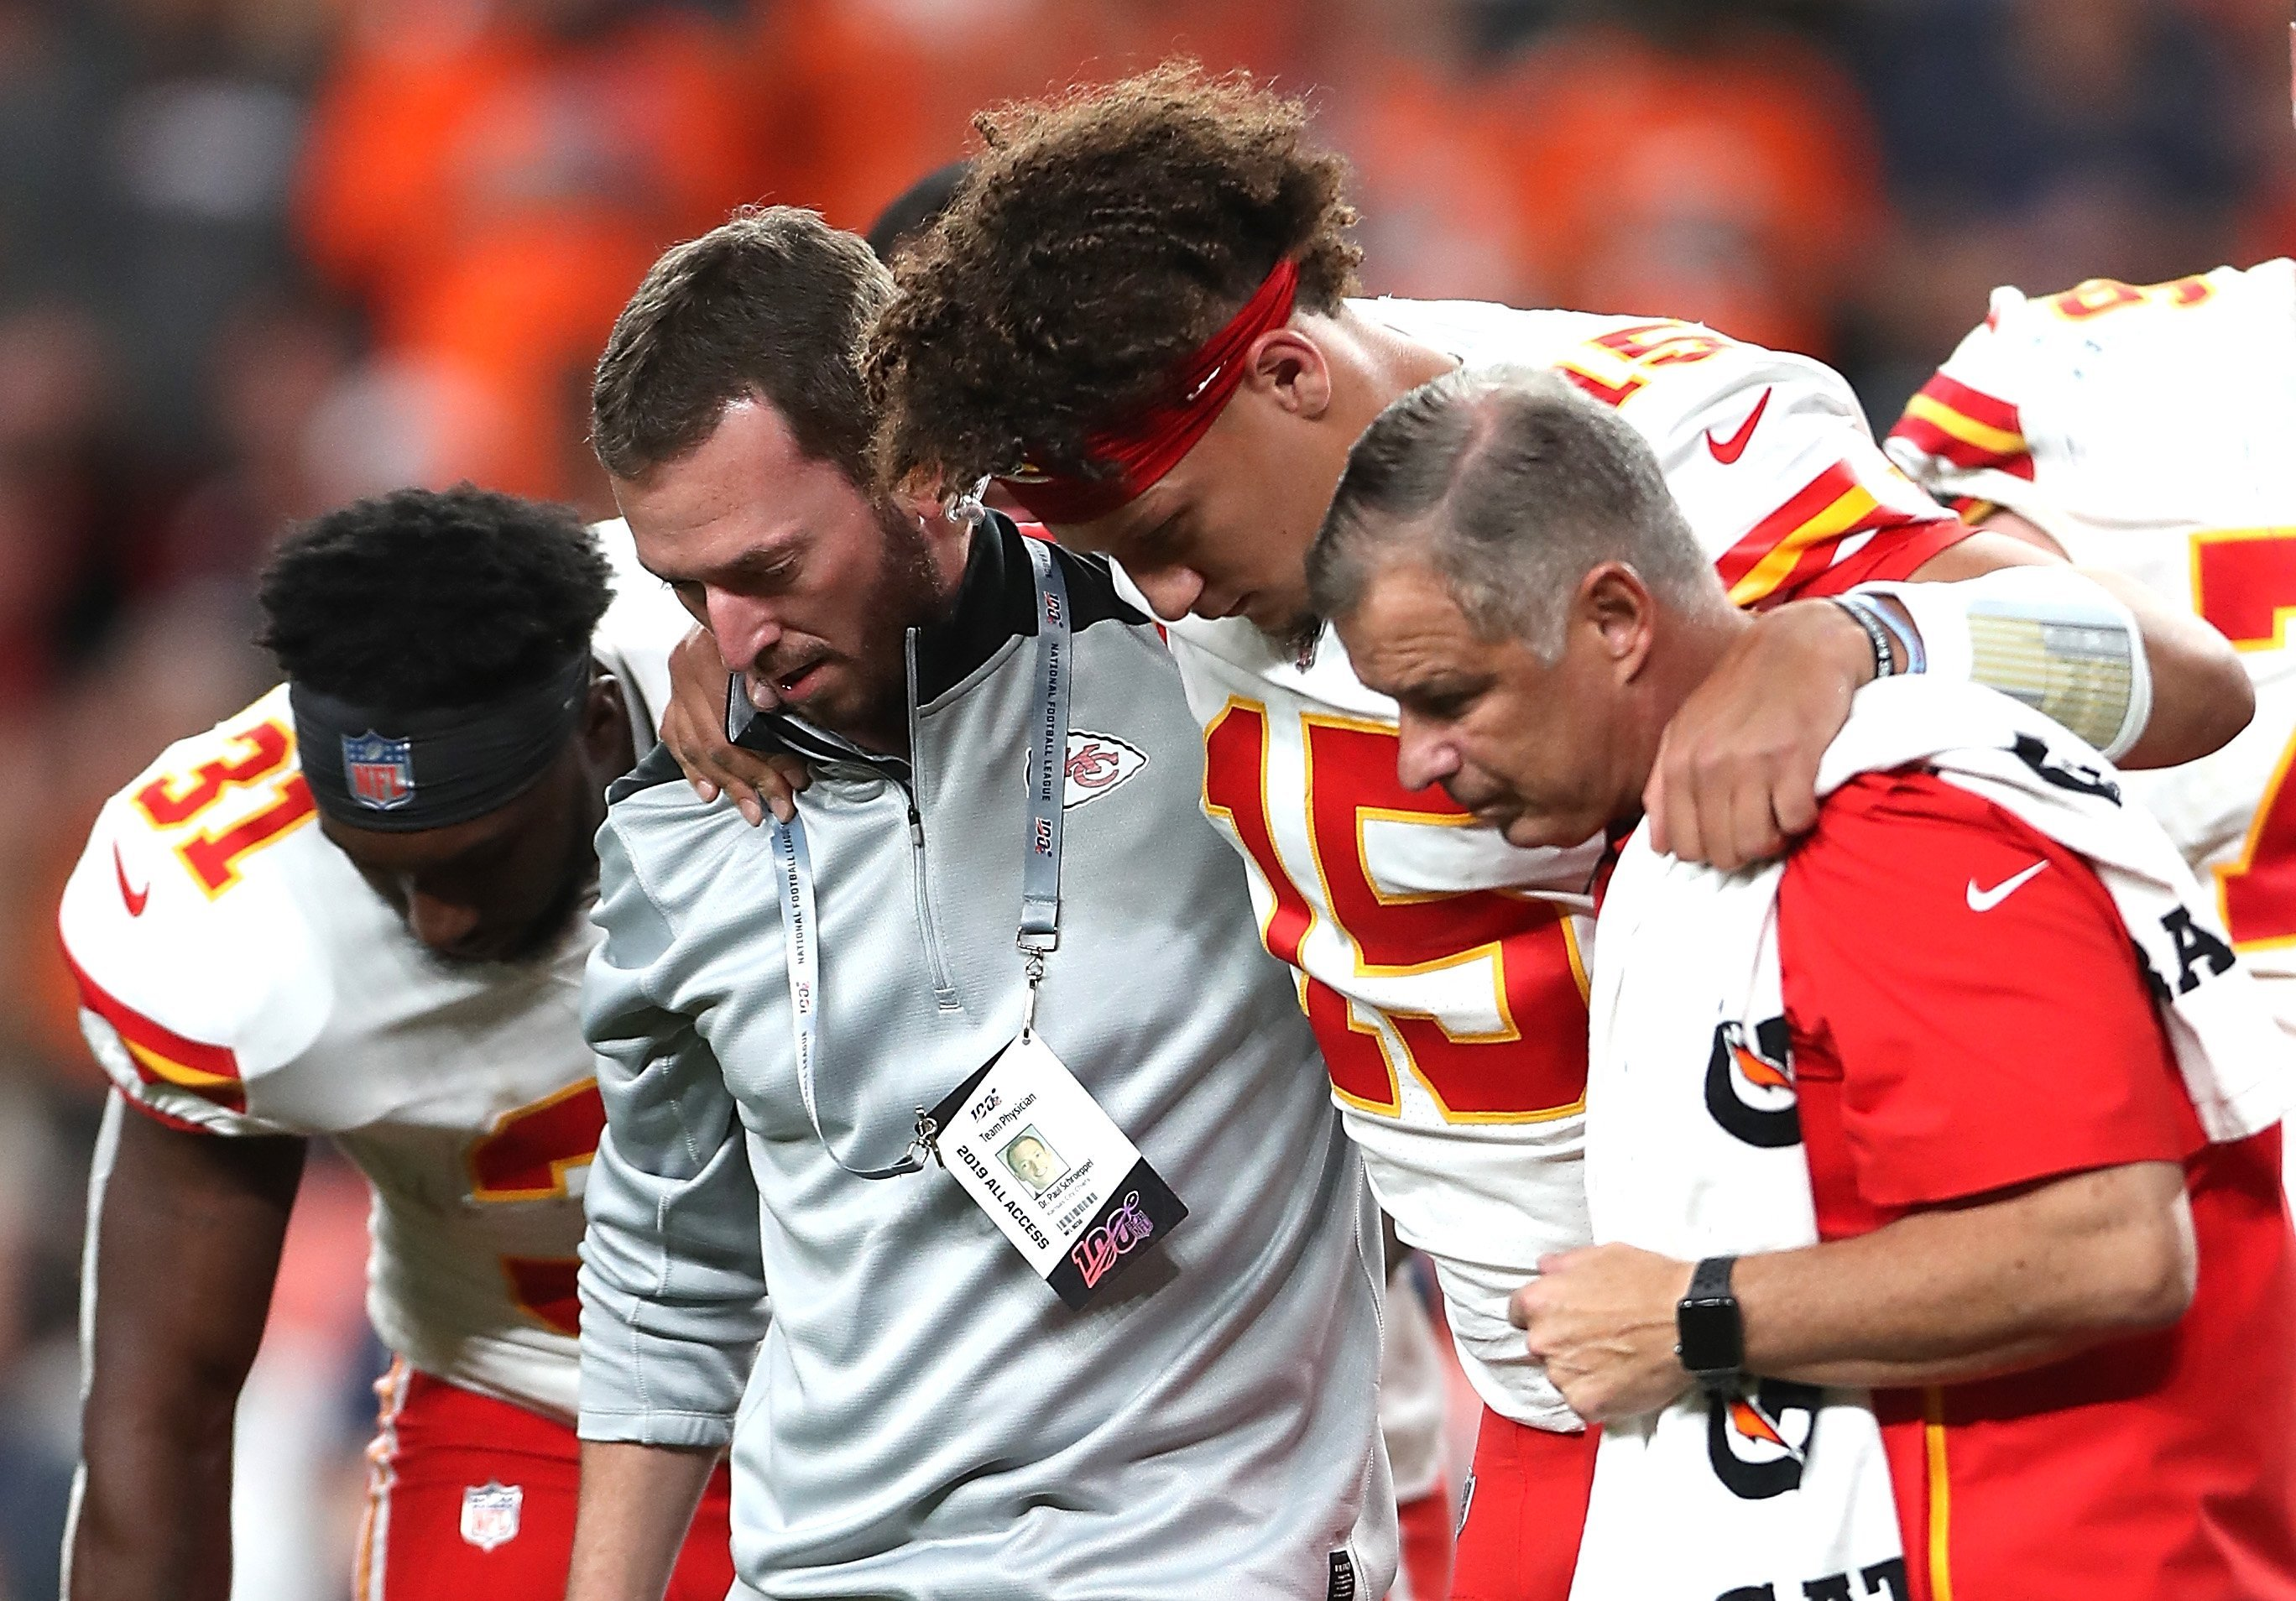 Reigning NFL MVP Patrick Mahomes suffers freak kneecap dislocation